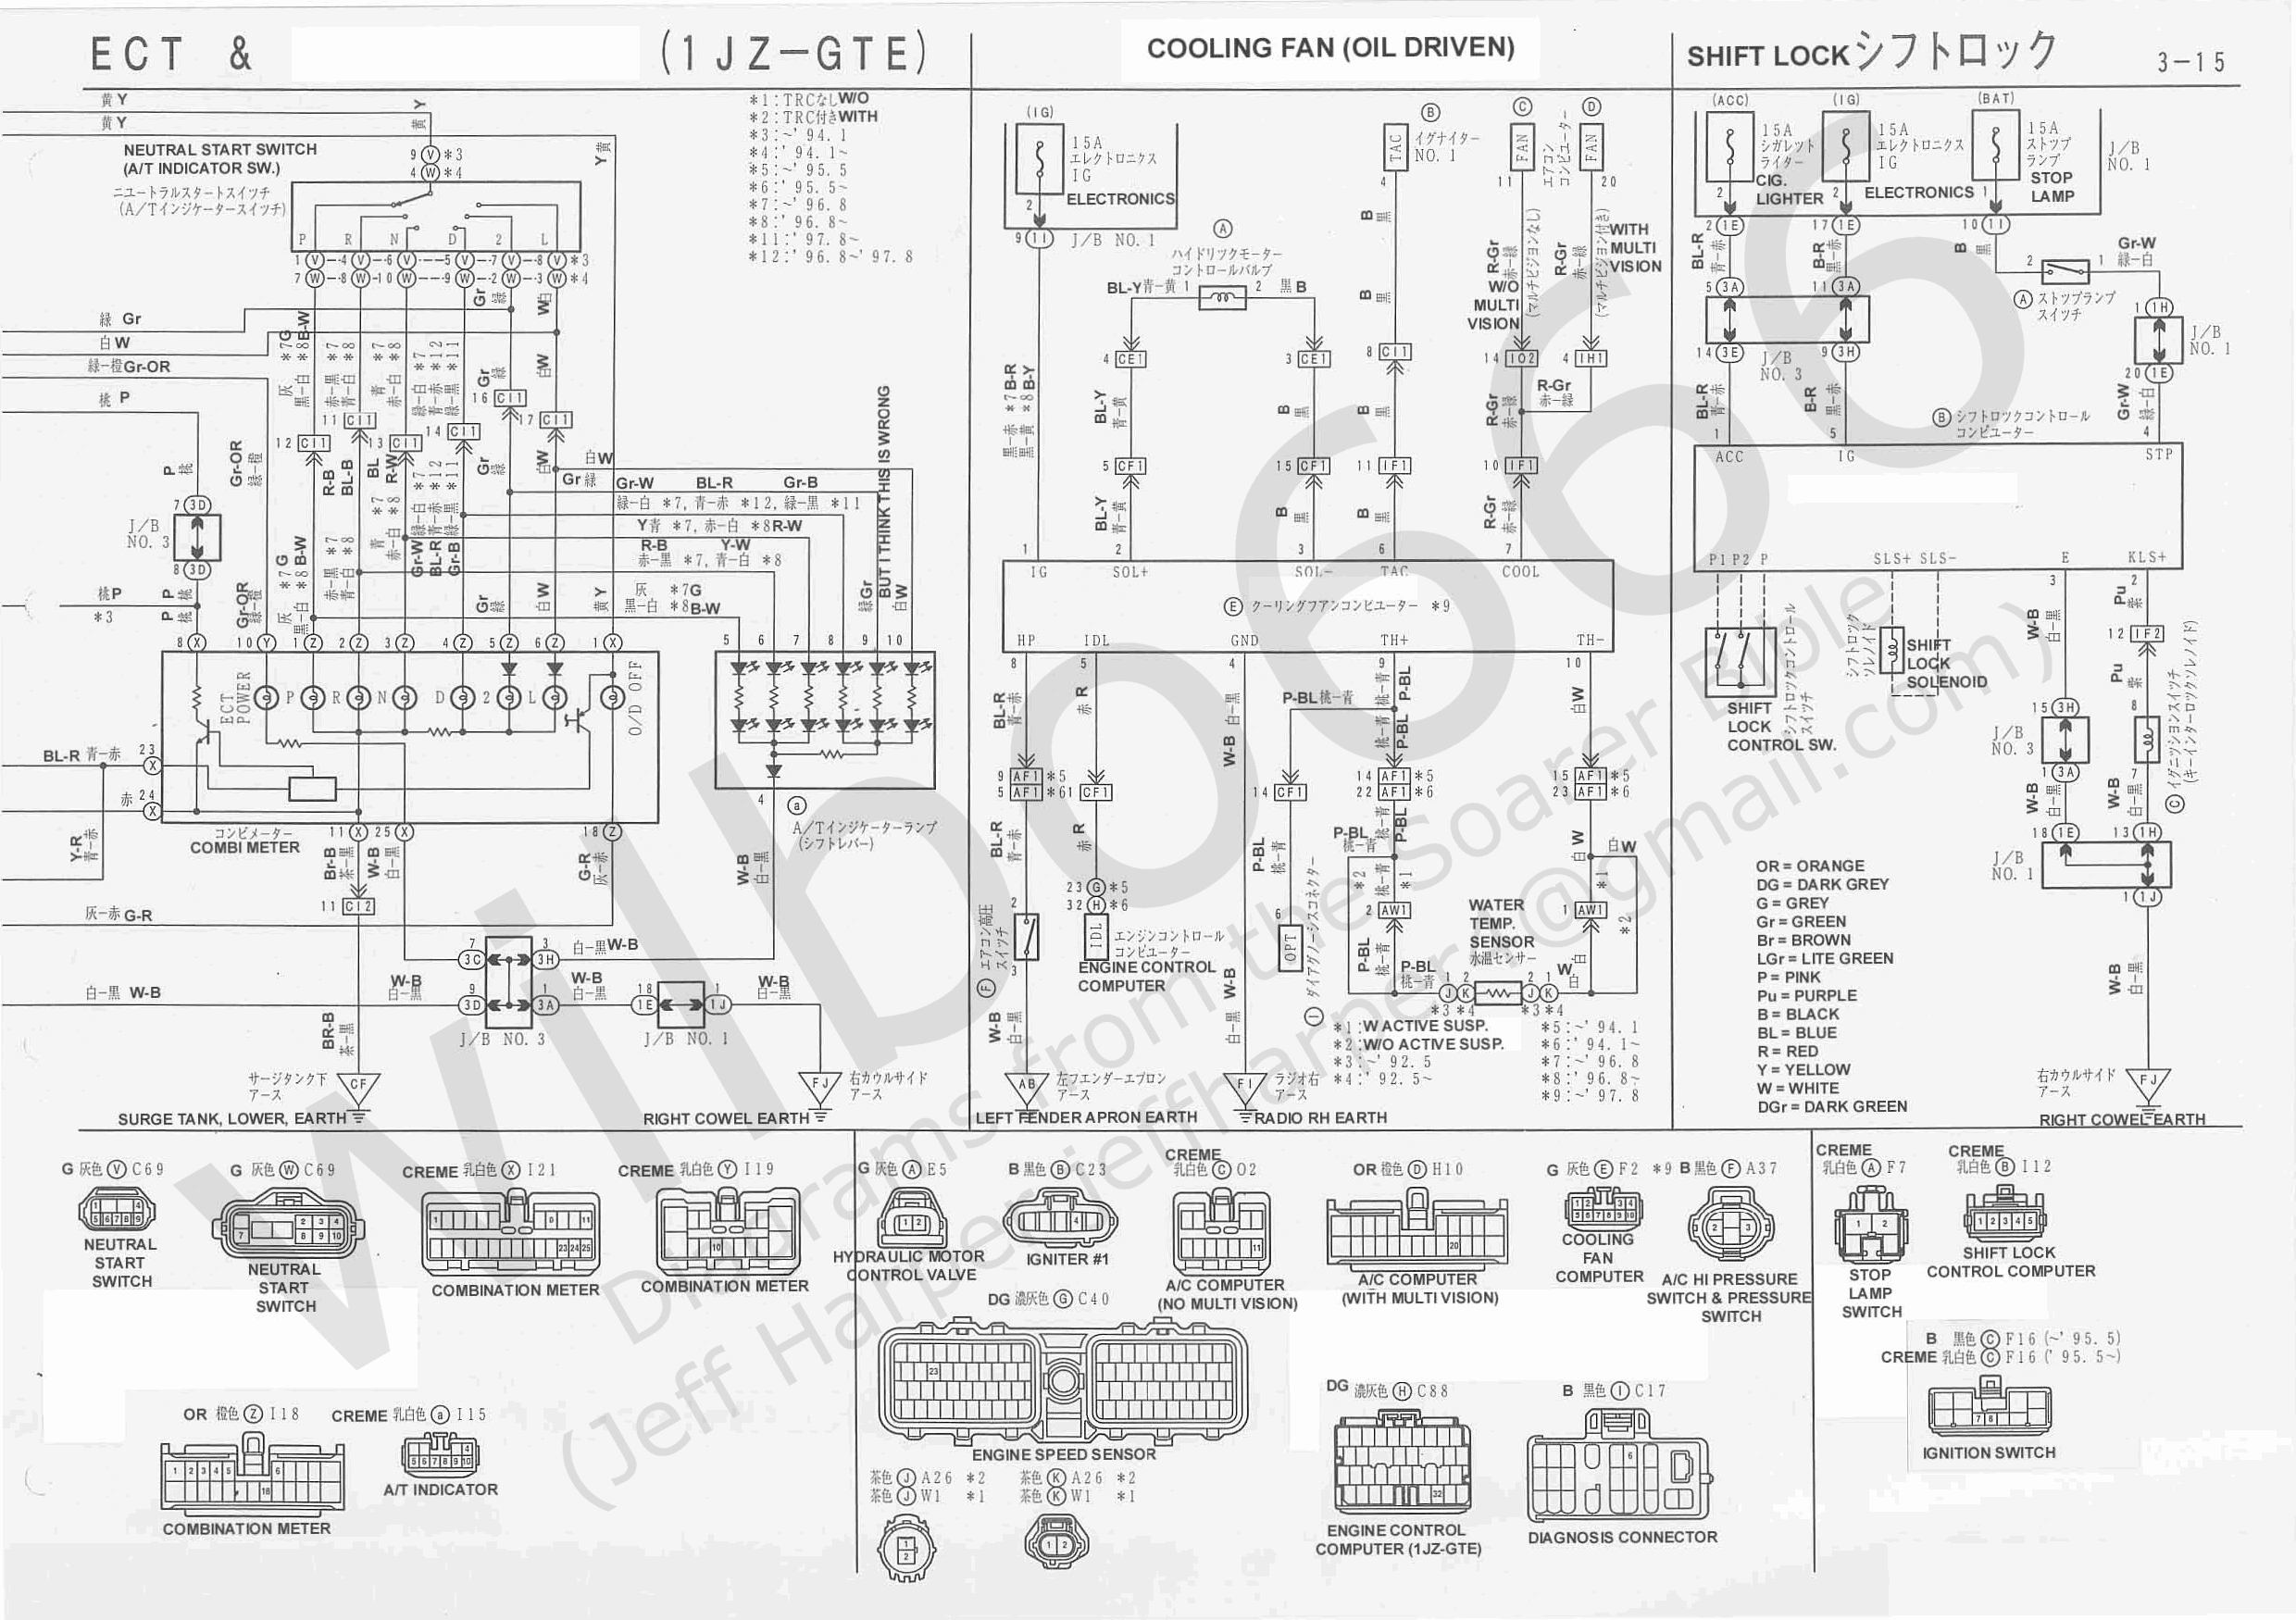 2jz alternator wiring diagram - wiring diagrams, Wiring diagram